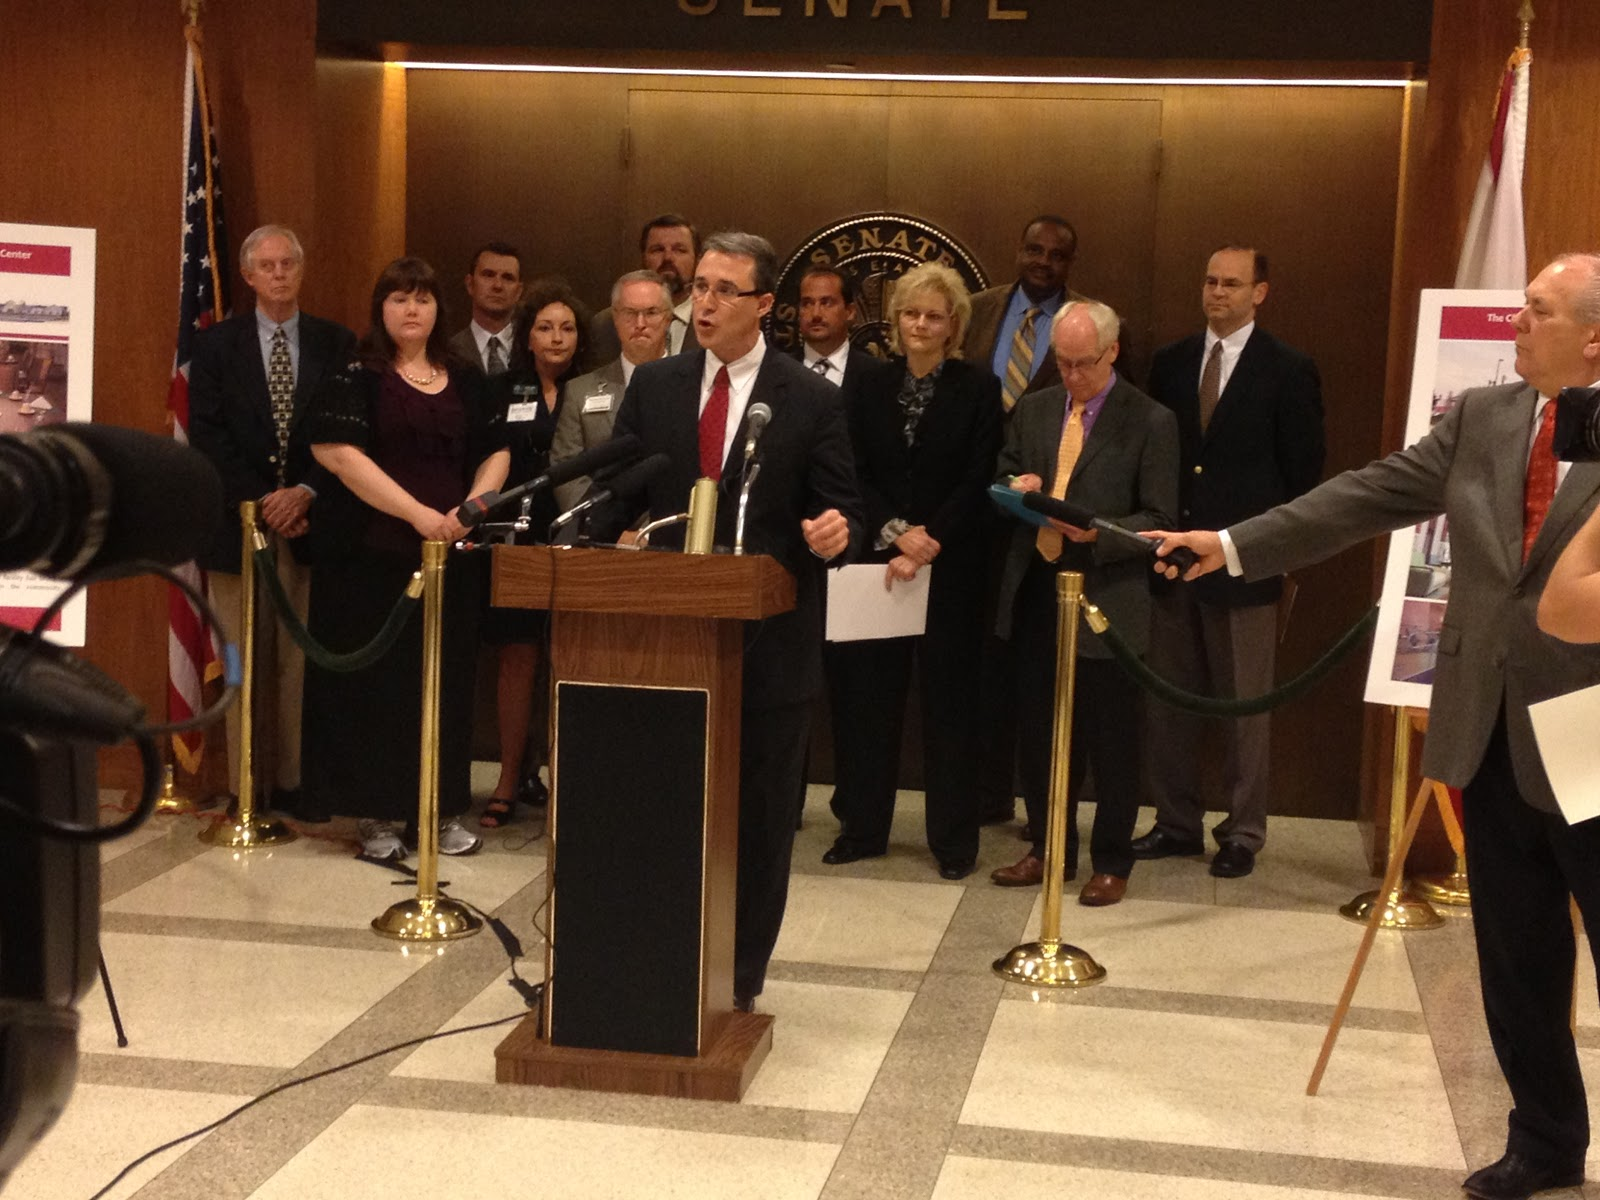 fhca capitol connection long term care advocates gather to